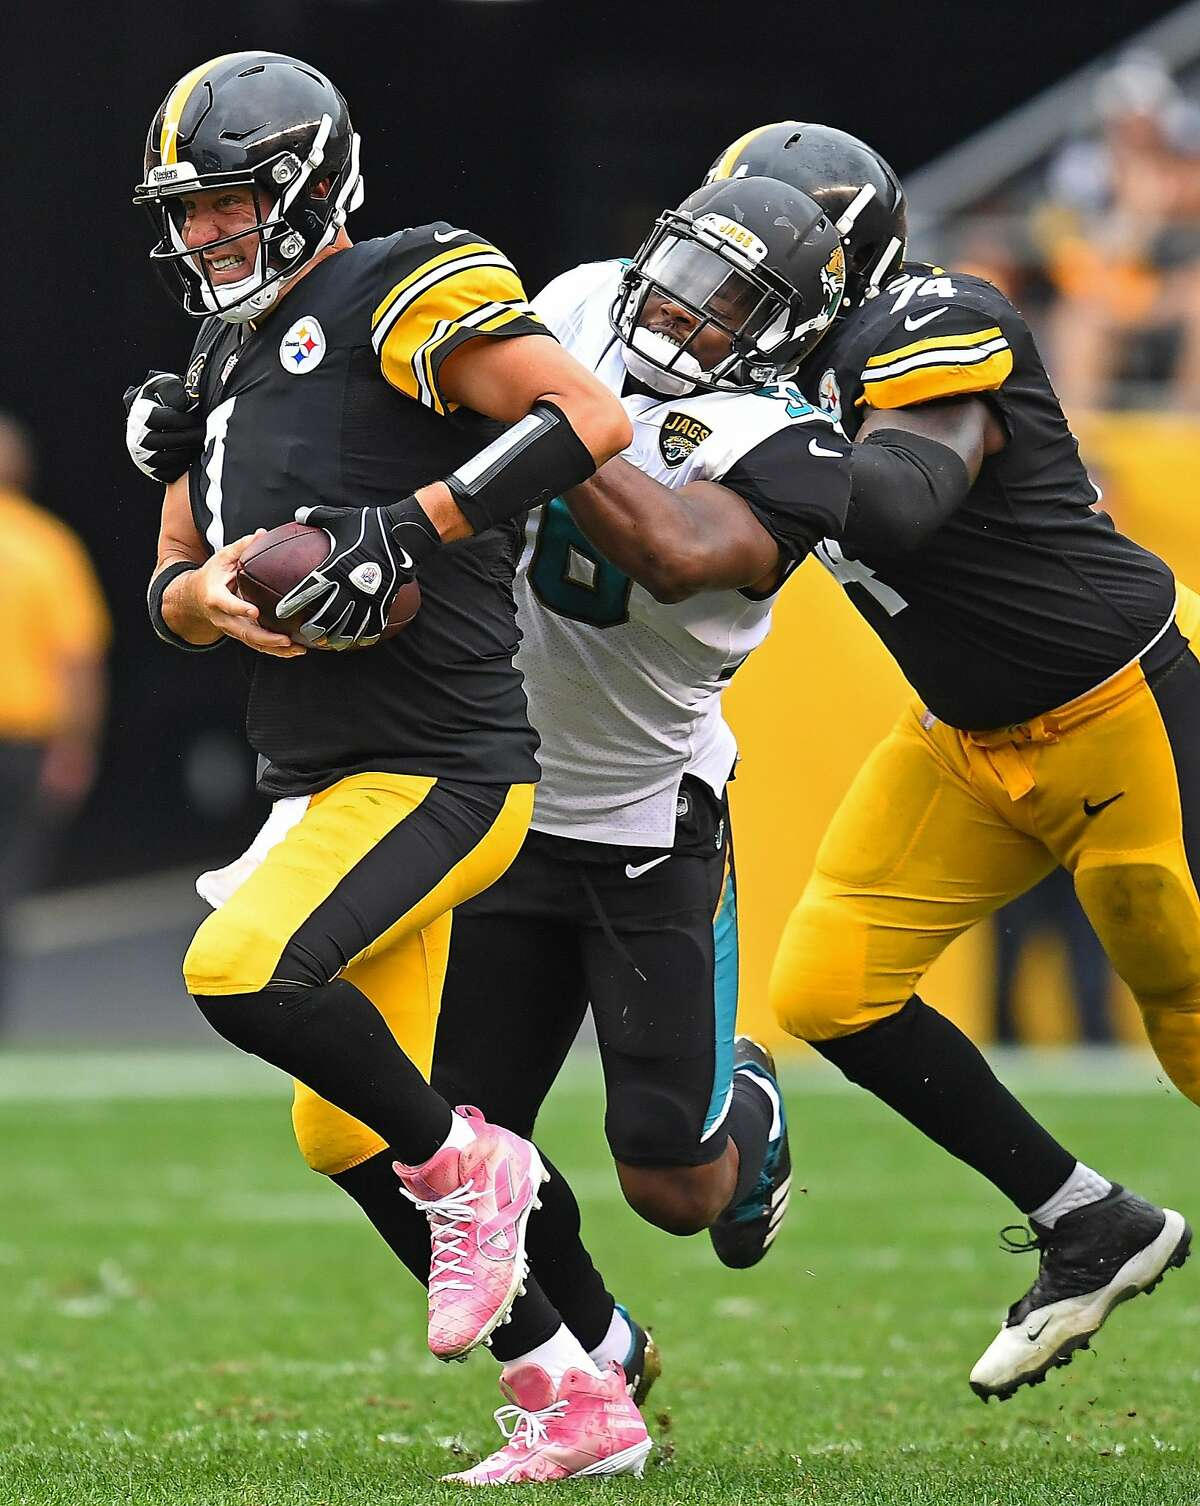 PITTSBURGH, PA - OCTOBER 08: Ben Roethlisberger #7 of the Pittsburgh Steelers is pressured by Dante Fowler #56 of the Jacksonville Jaguars in the second half during the game at Heinz Field on October 8, 2017 in Pittsburgh, Pennsylvania. (Photo by Joe Sargent/Getty Images)